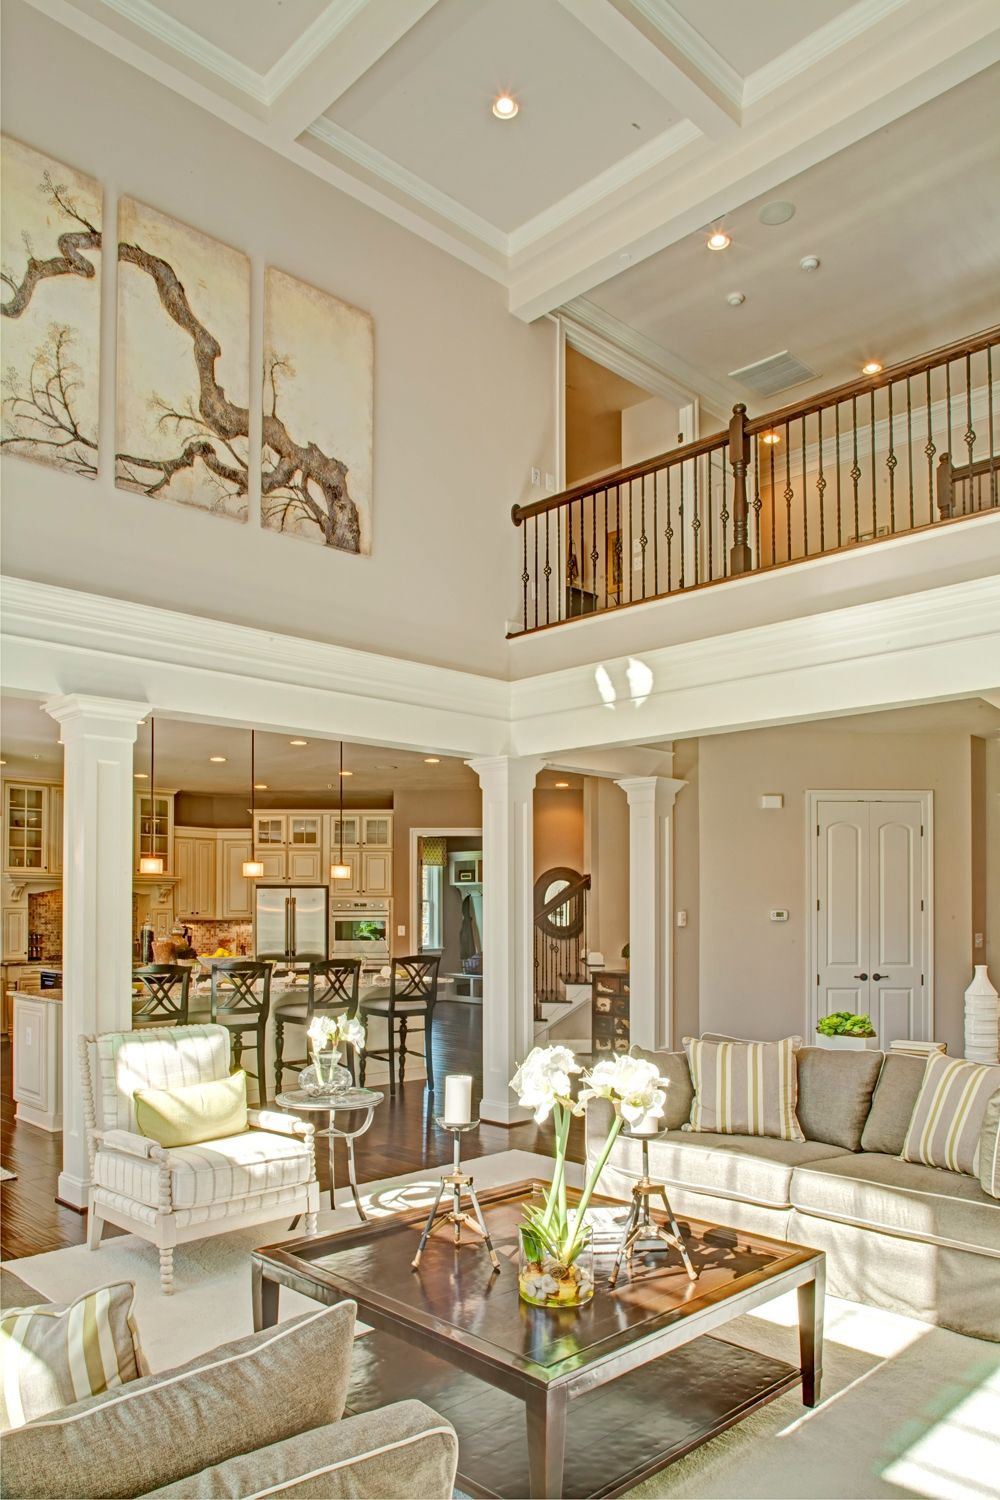 Two Story Fireplace Design Ideas Bathroomfurniturezone 2 Story Family Room Decorating Ideas